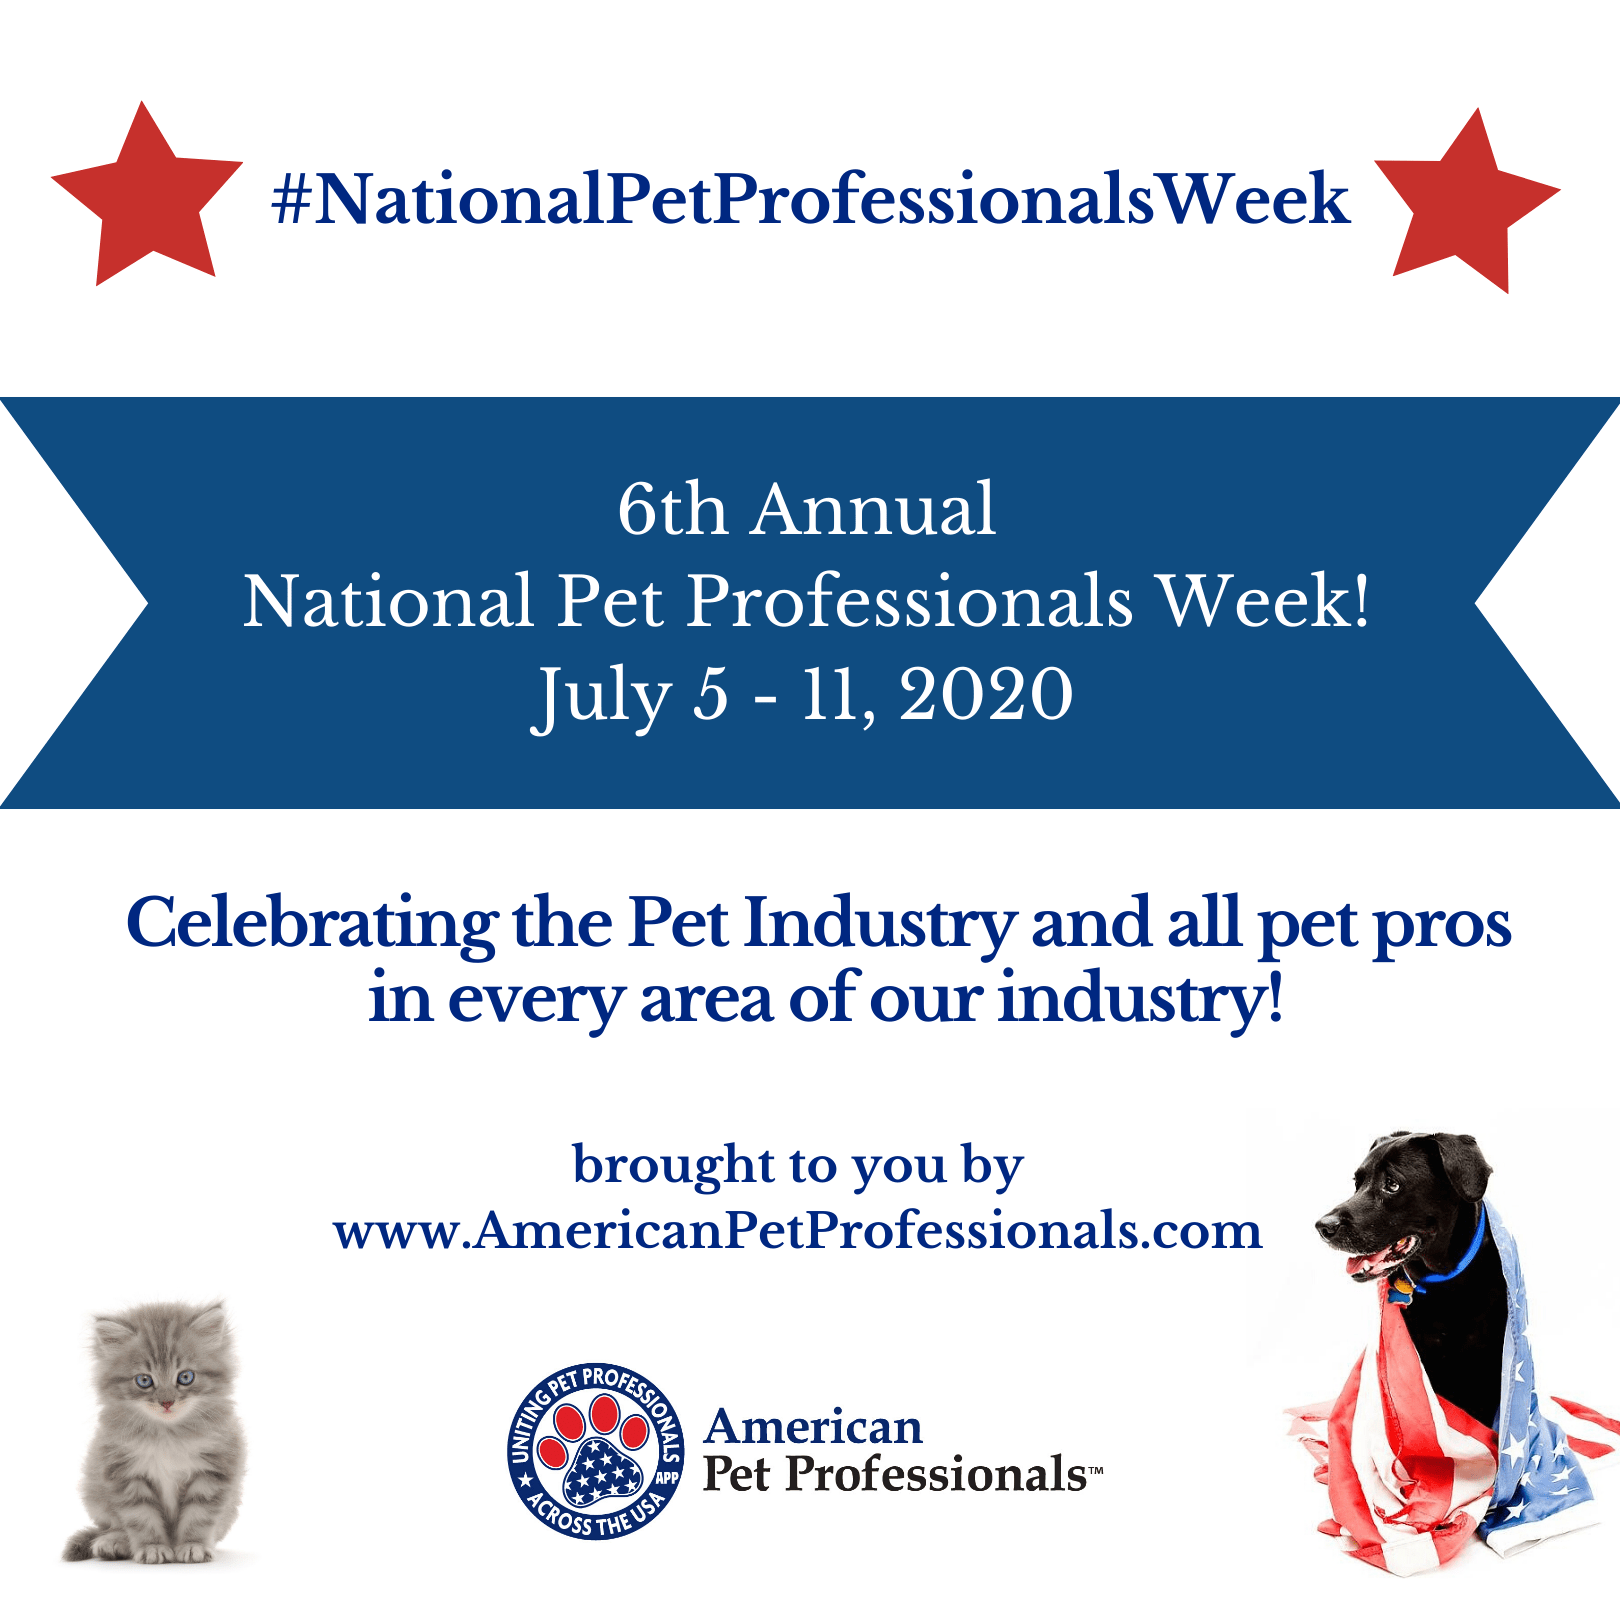 Pet Professionals week 2020